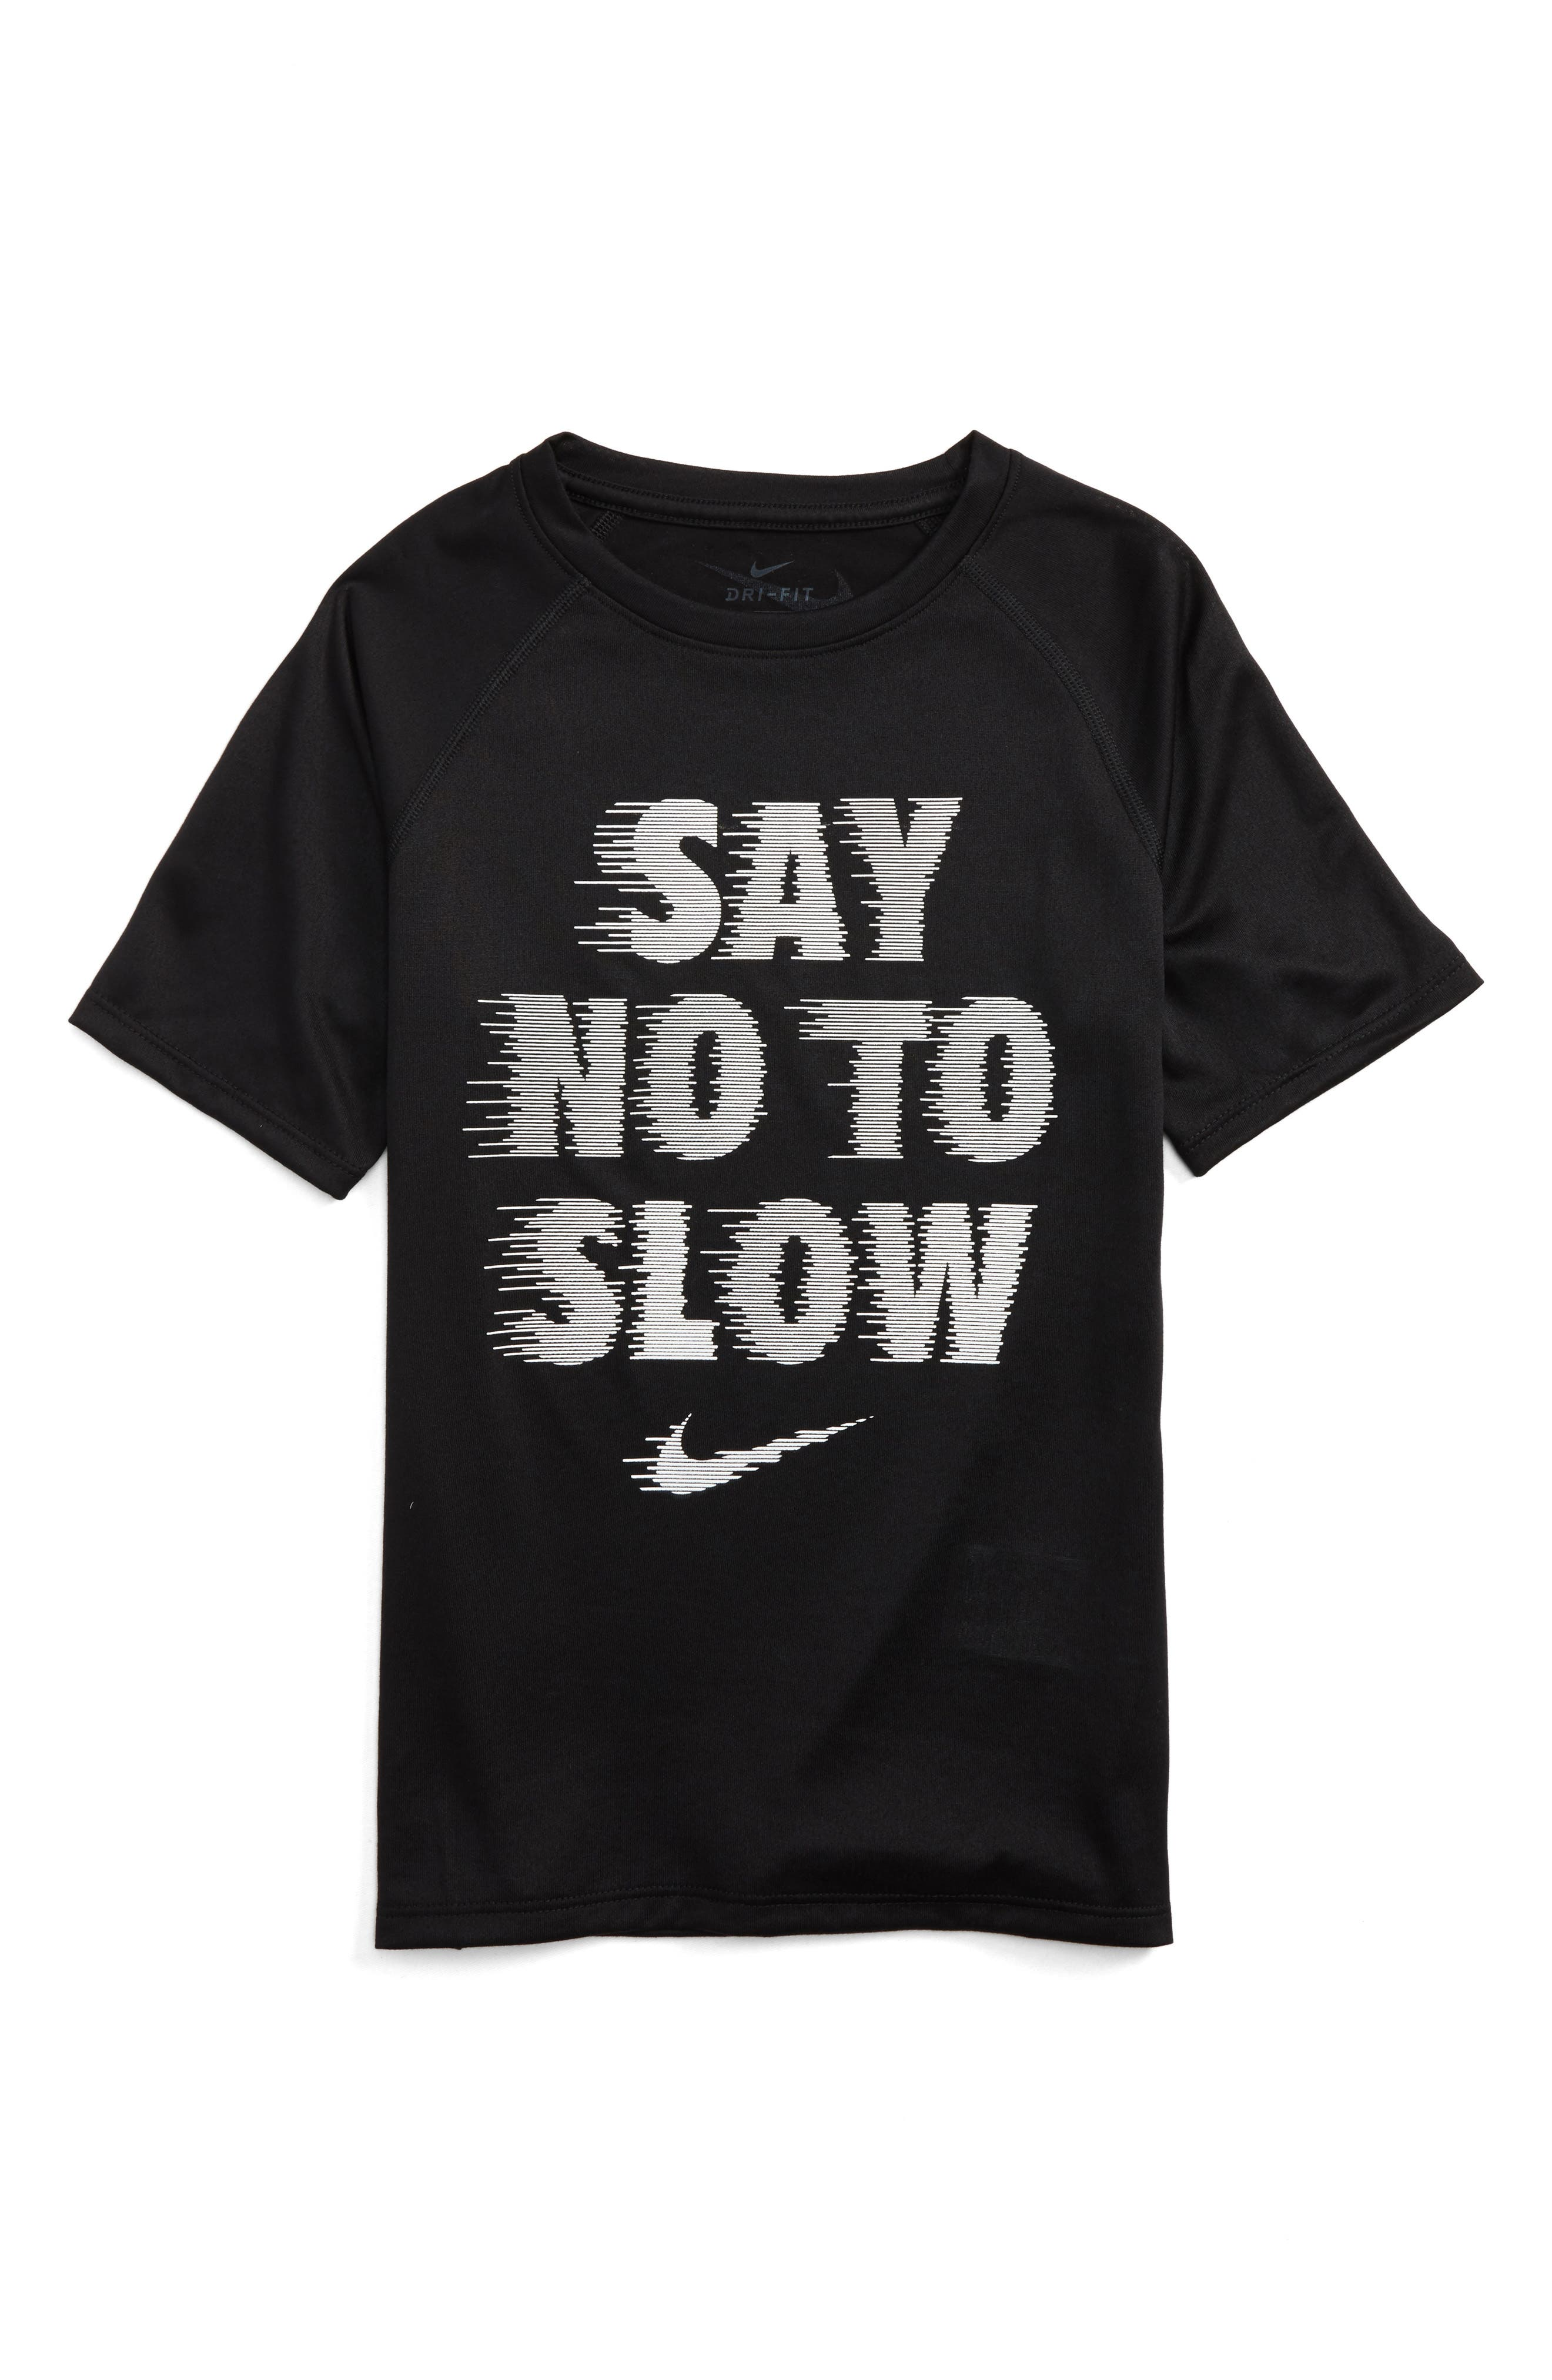 Dry Say No to Slow Graphic T-Shirt,                             Main thumbnail 1, color,                             Black/ White